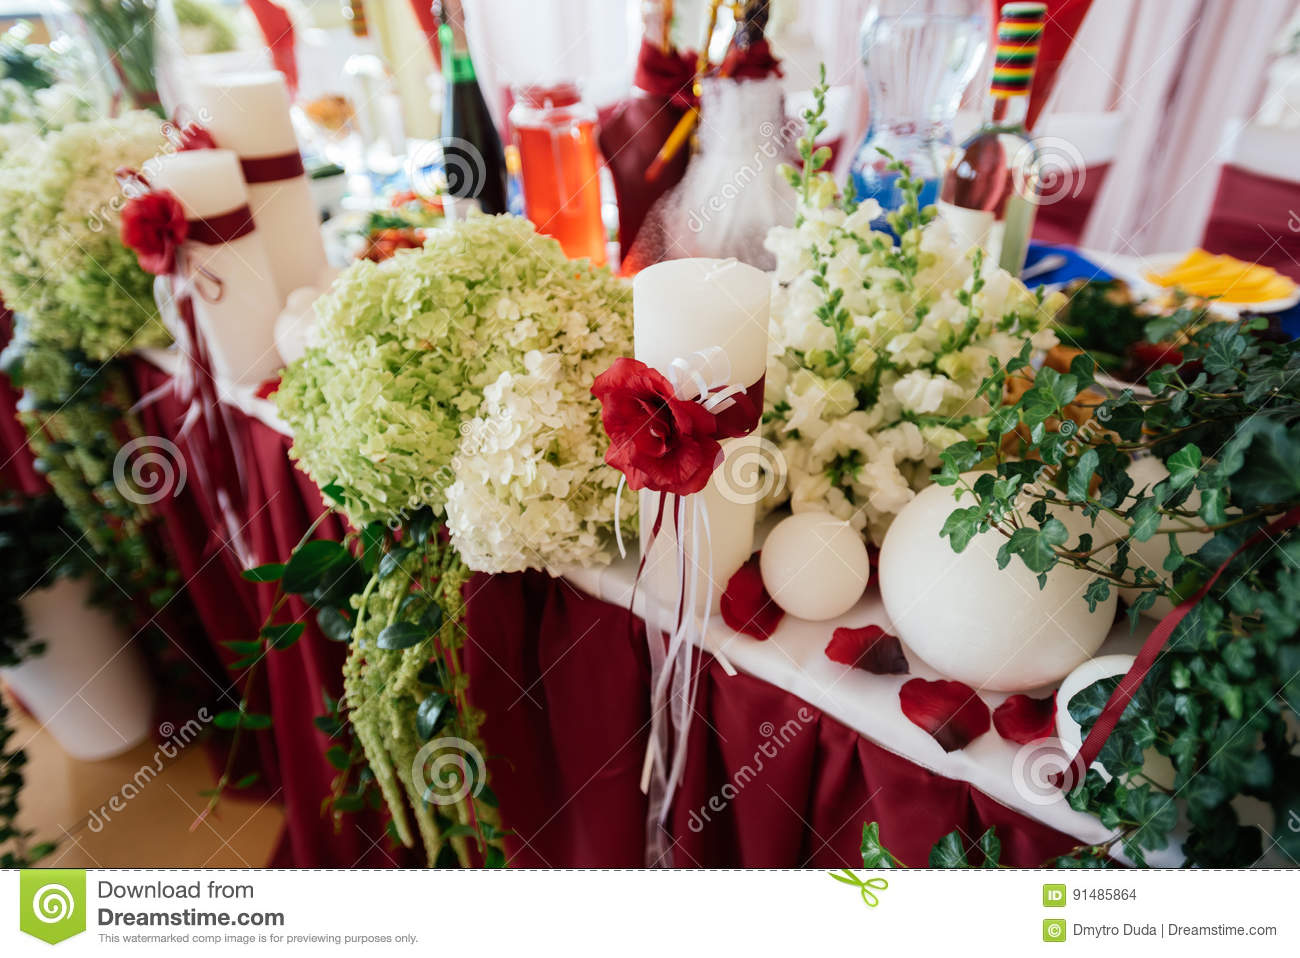 White Wedding Candles Decorated With Red Roses And Ribbons Stock